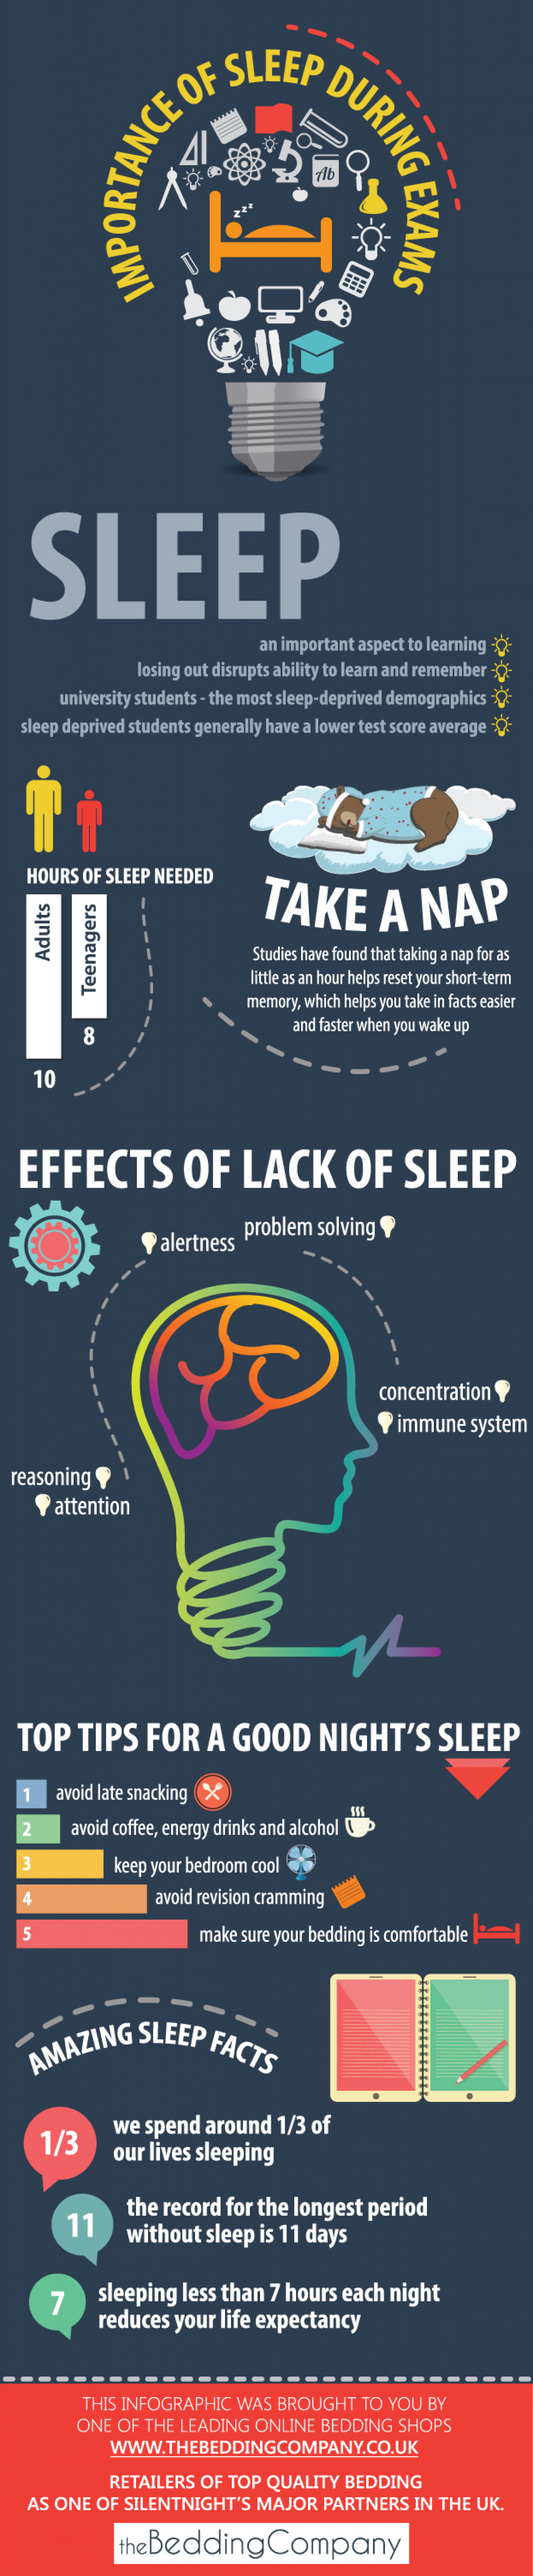 Importance Of Sleep During Exams Infographic